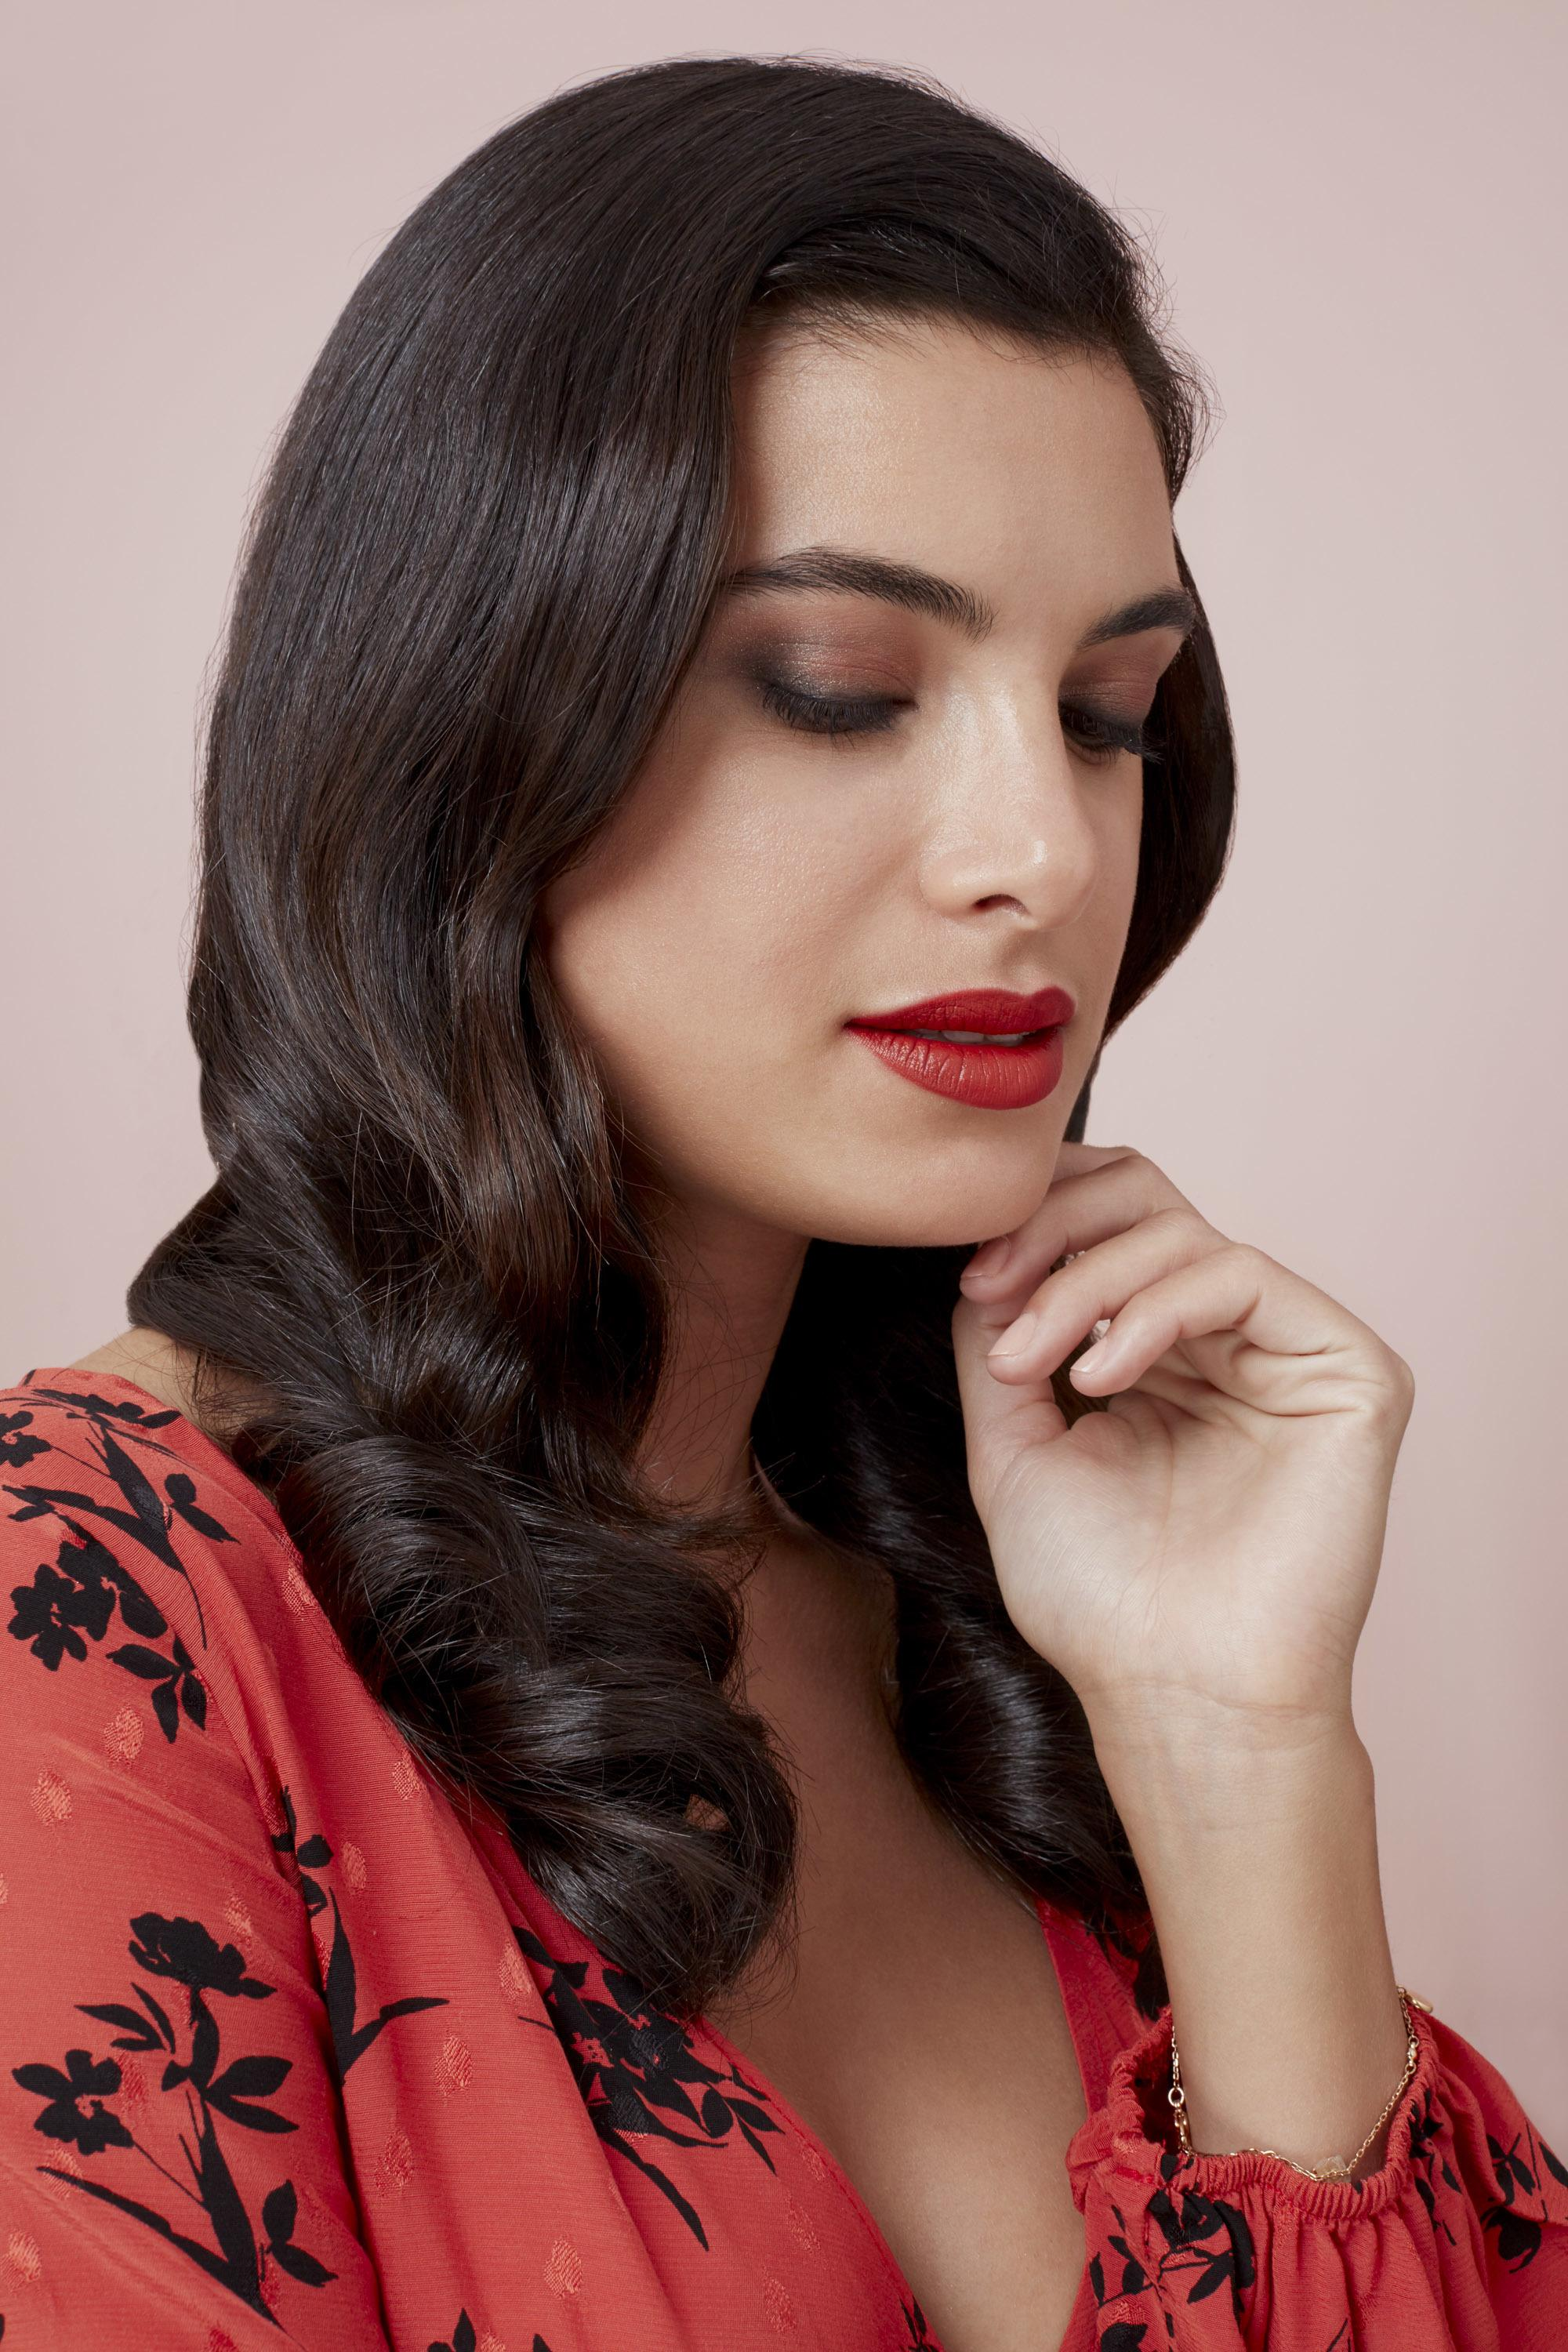 Valentines hair: Brunette woman with polished Hollywood waves, wearing a red floral dress and red lipstick